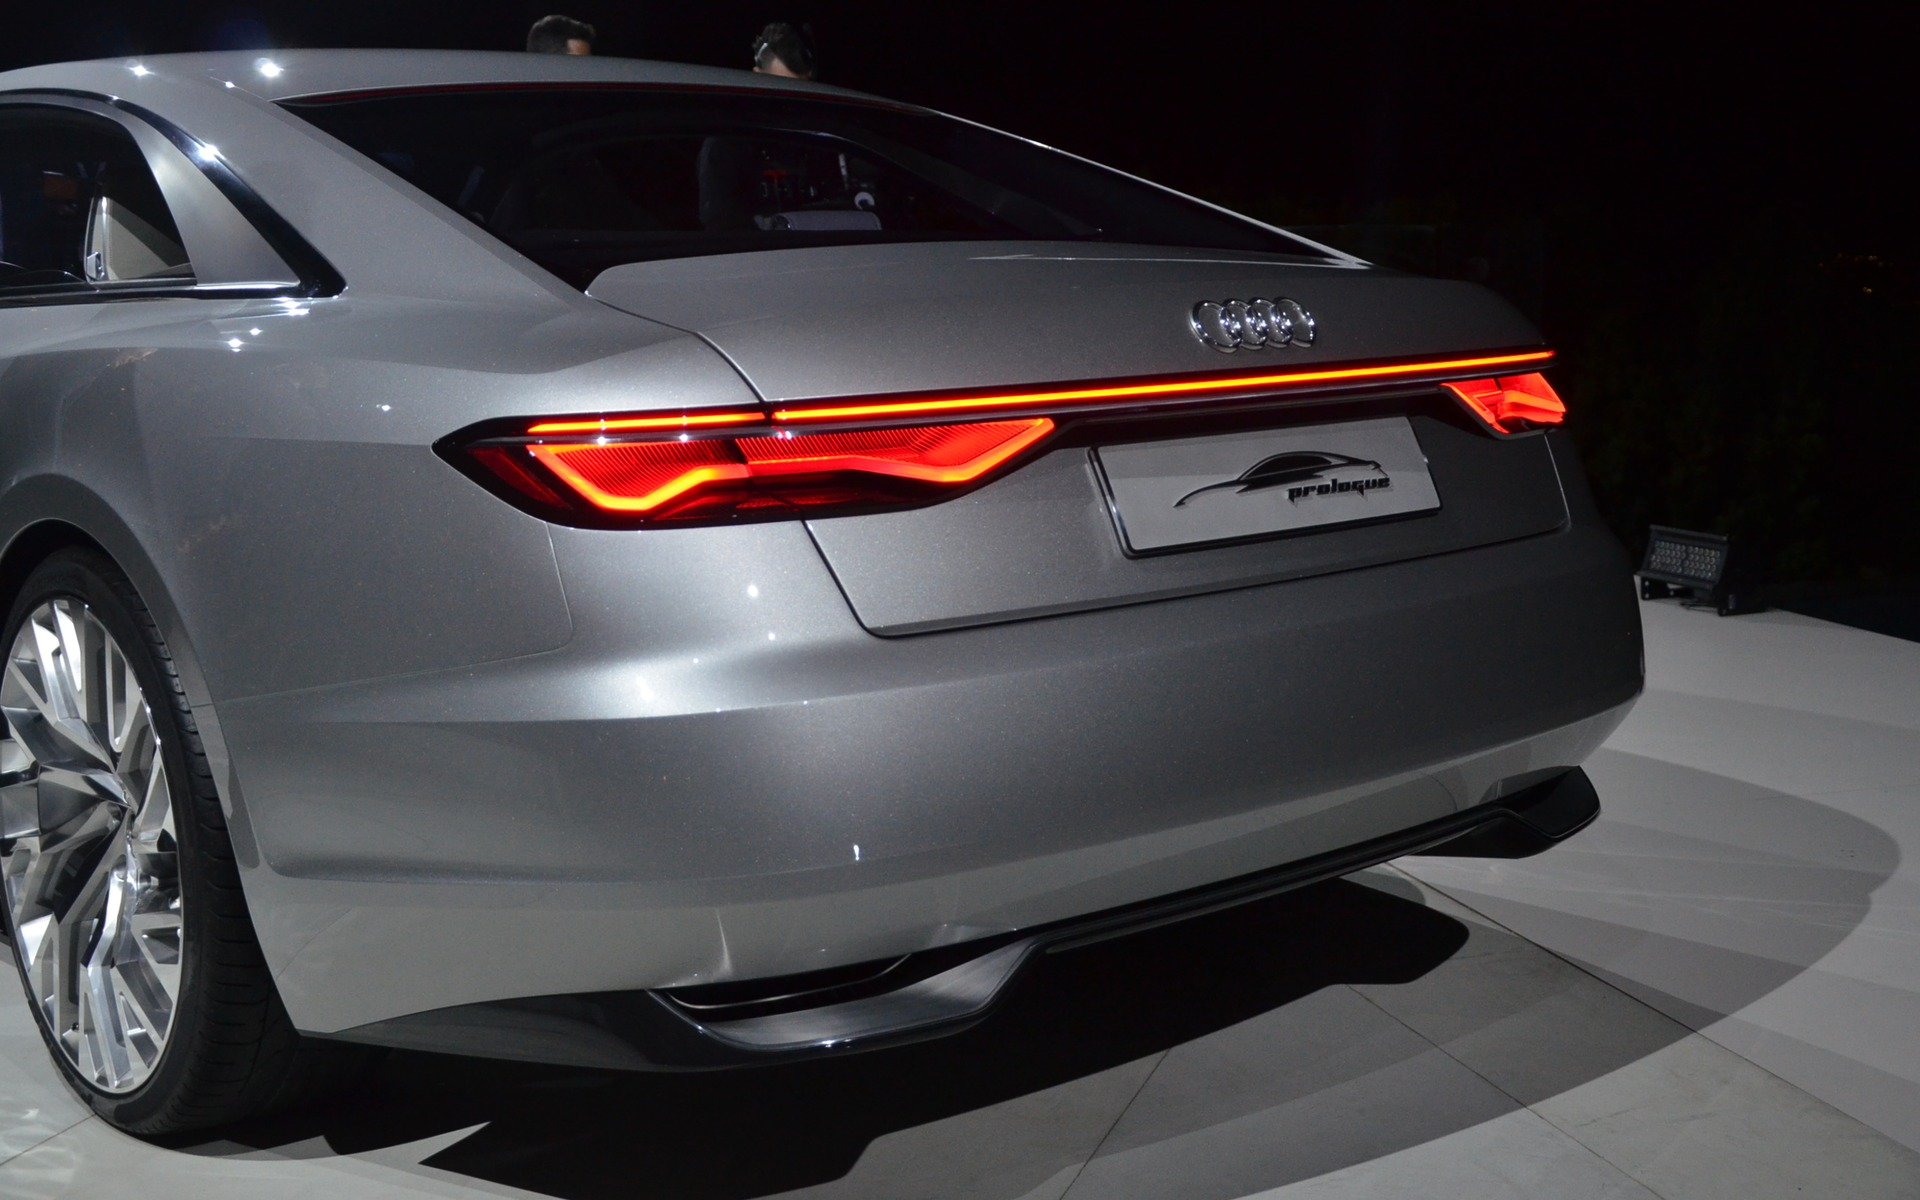 Audi Prologue - Picture Gallery, photo 16/17 - The Car Guide